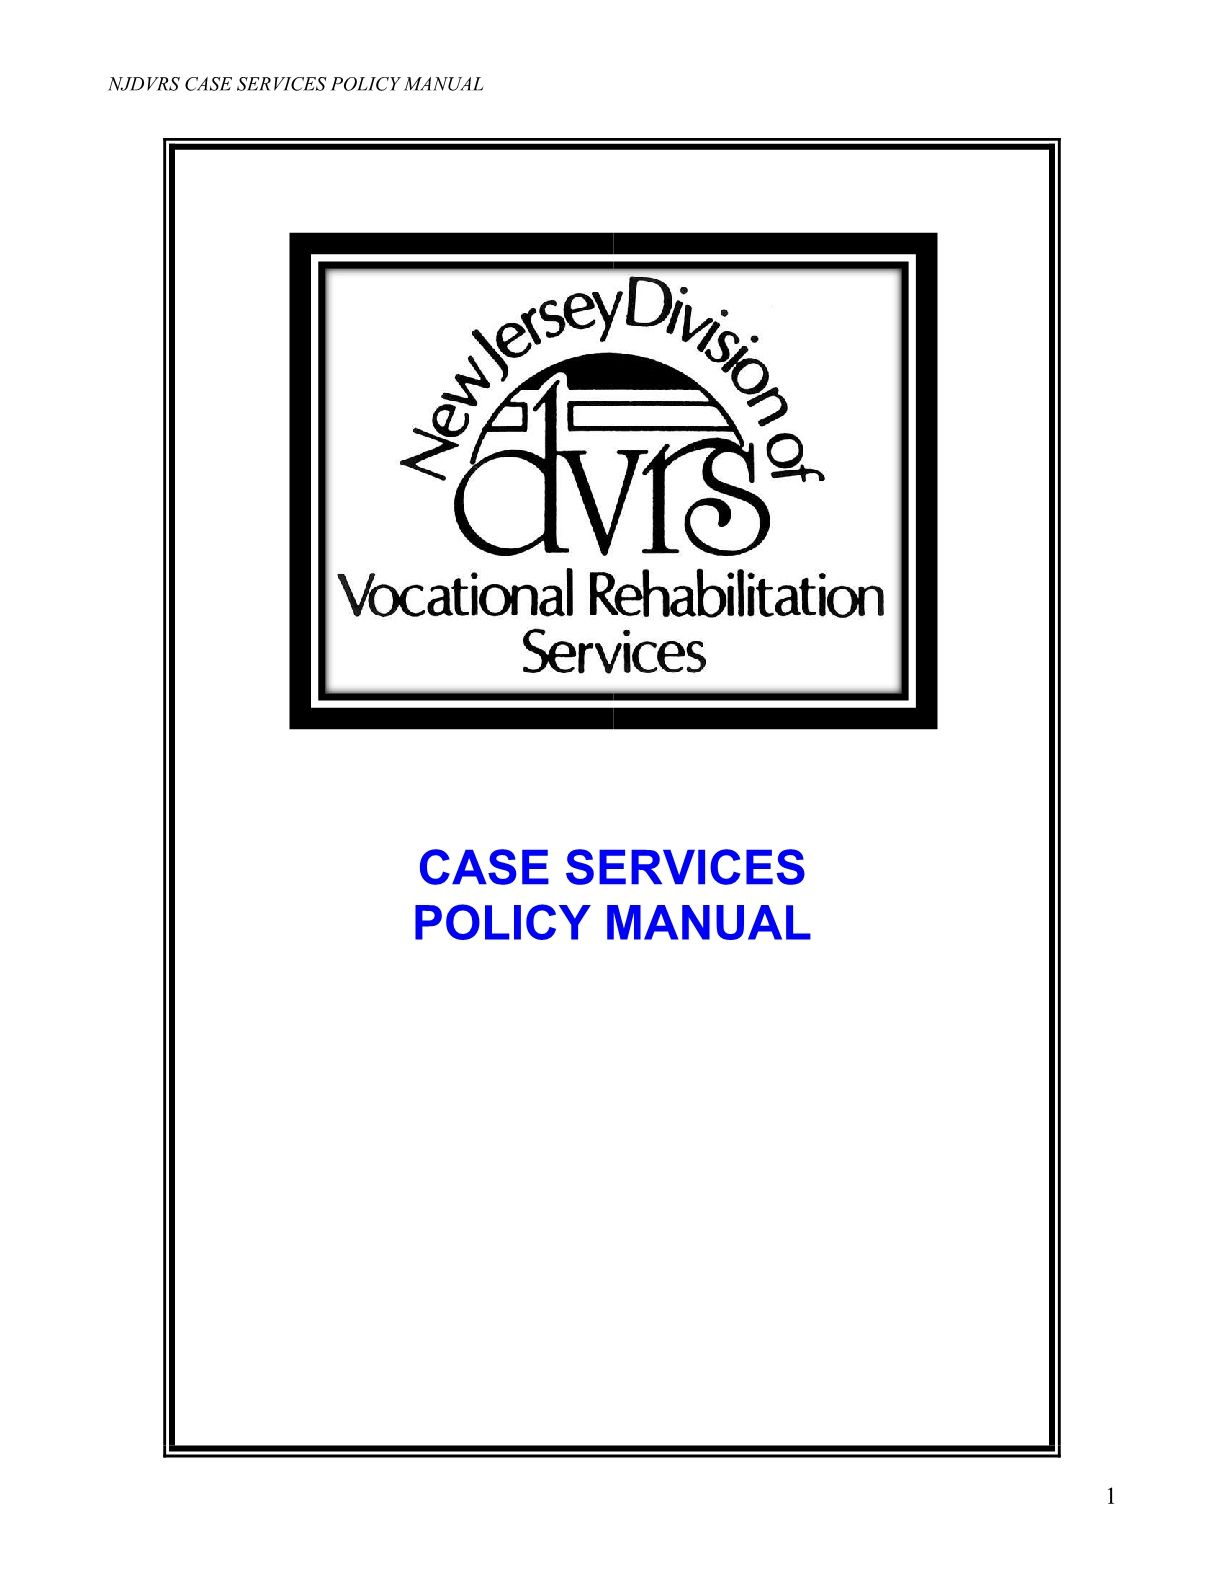 DVRS Case Services Policy Manual